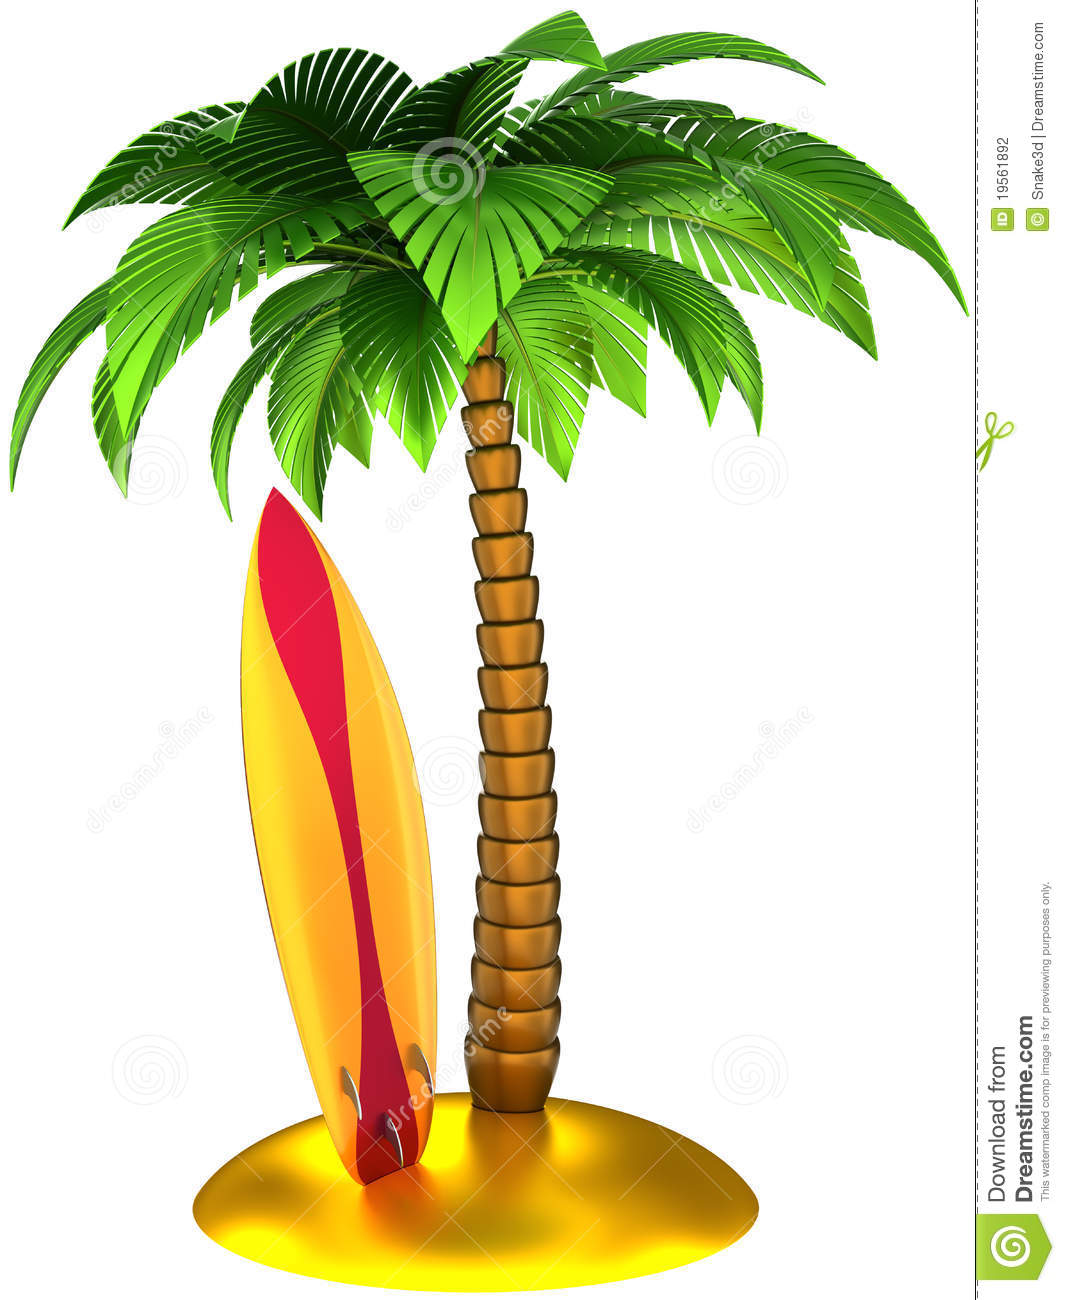 Hawaiian Palm Tree Clip Art Palm Tree Surfboard Stylized 19561892 Jpg